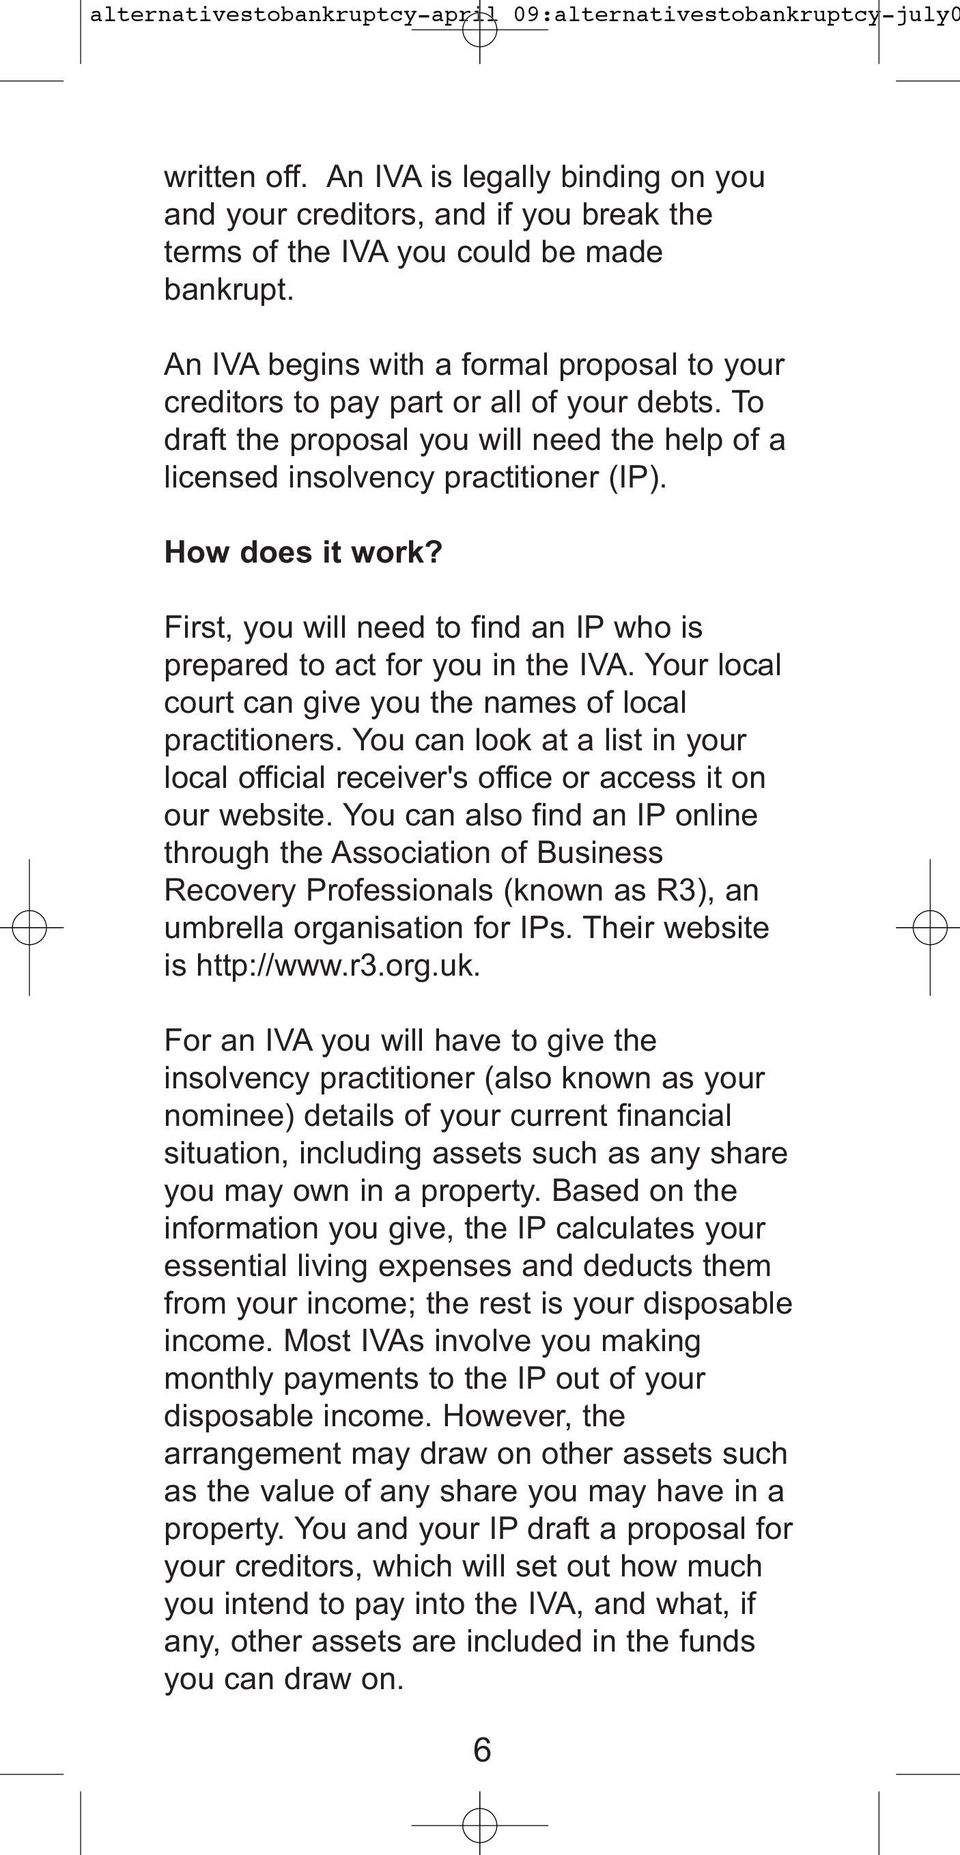 First, you will need to find an IP who is prepared to act for you in the IVA. Your local court can give you the names of local practitioners.